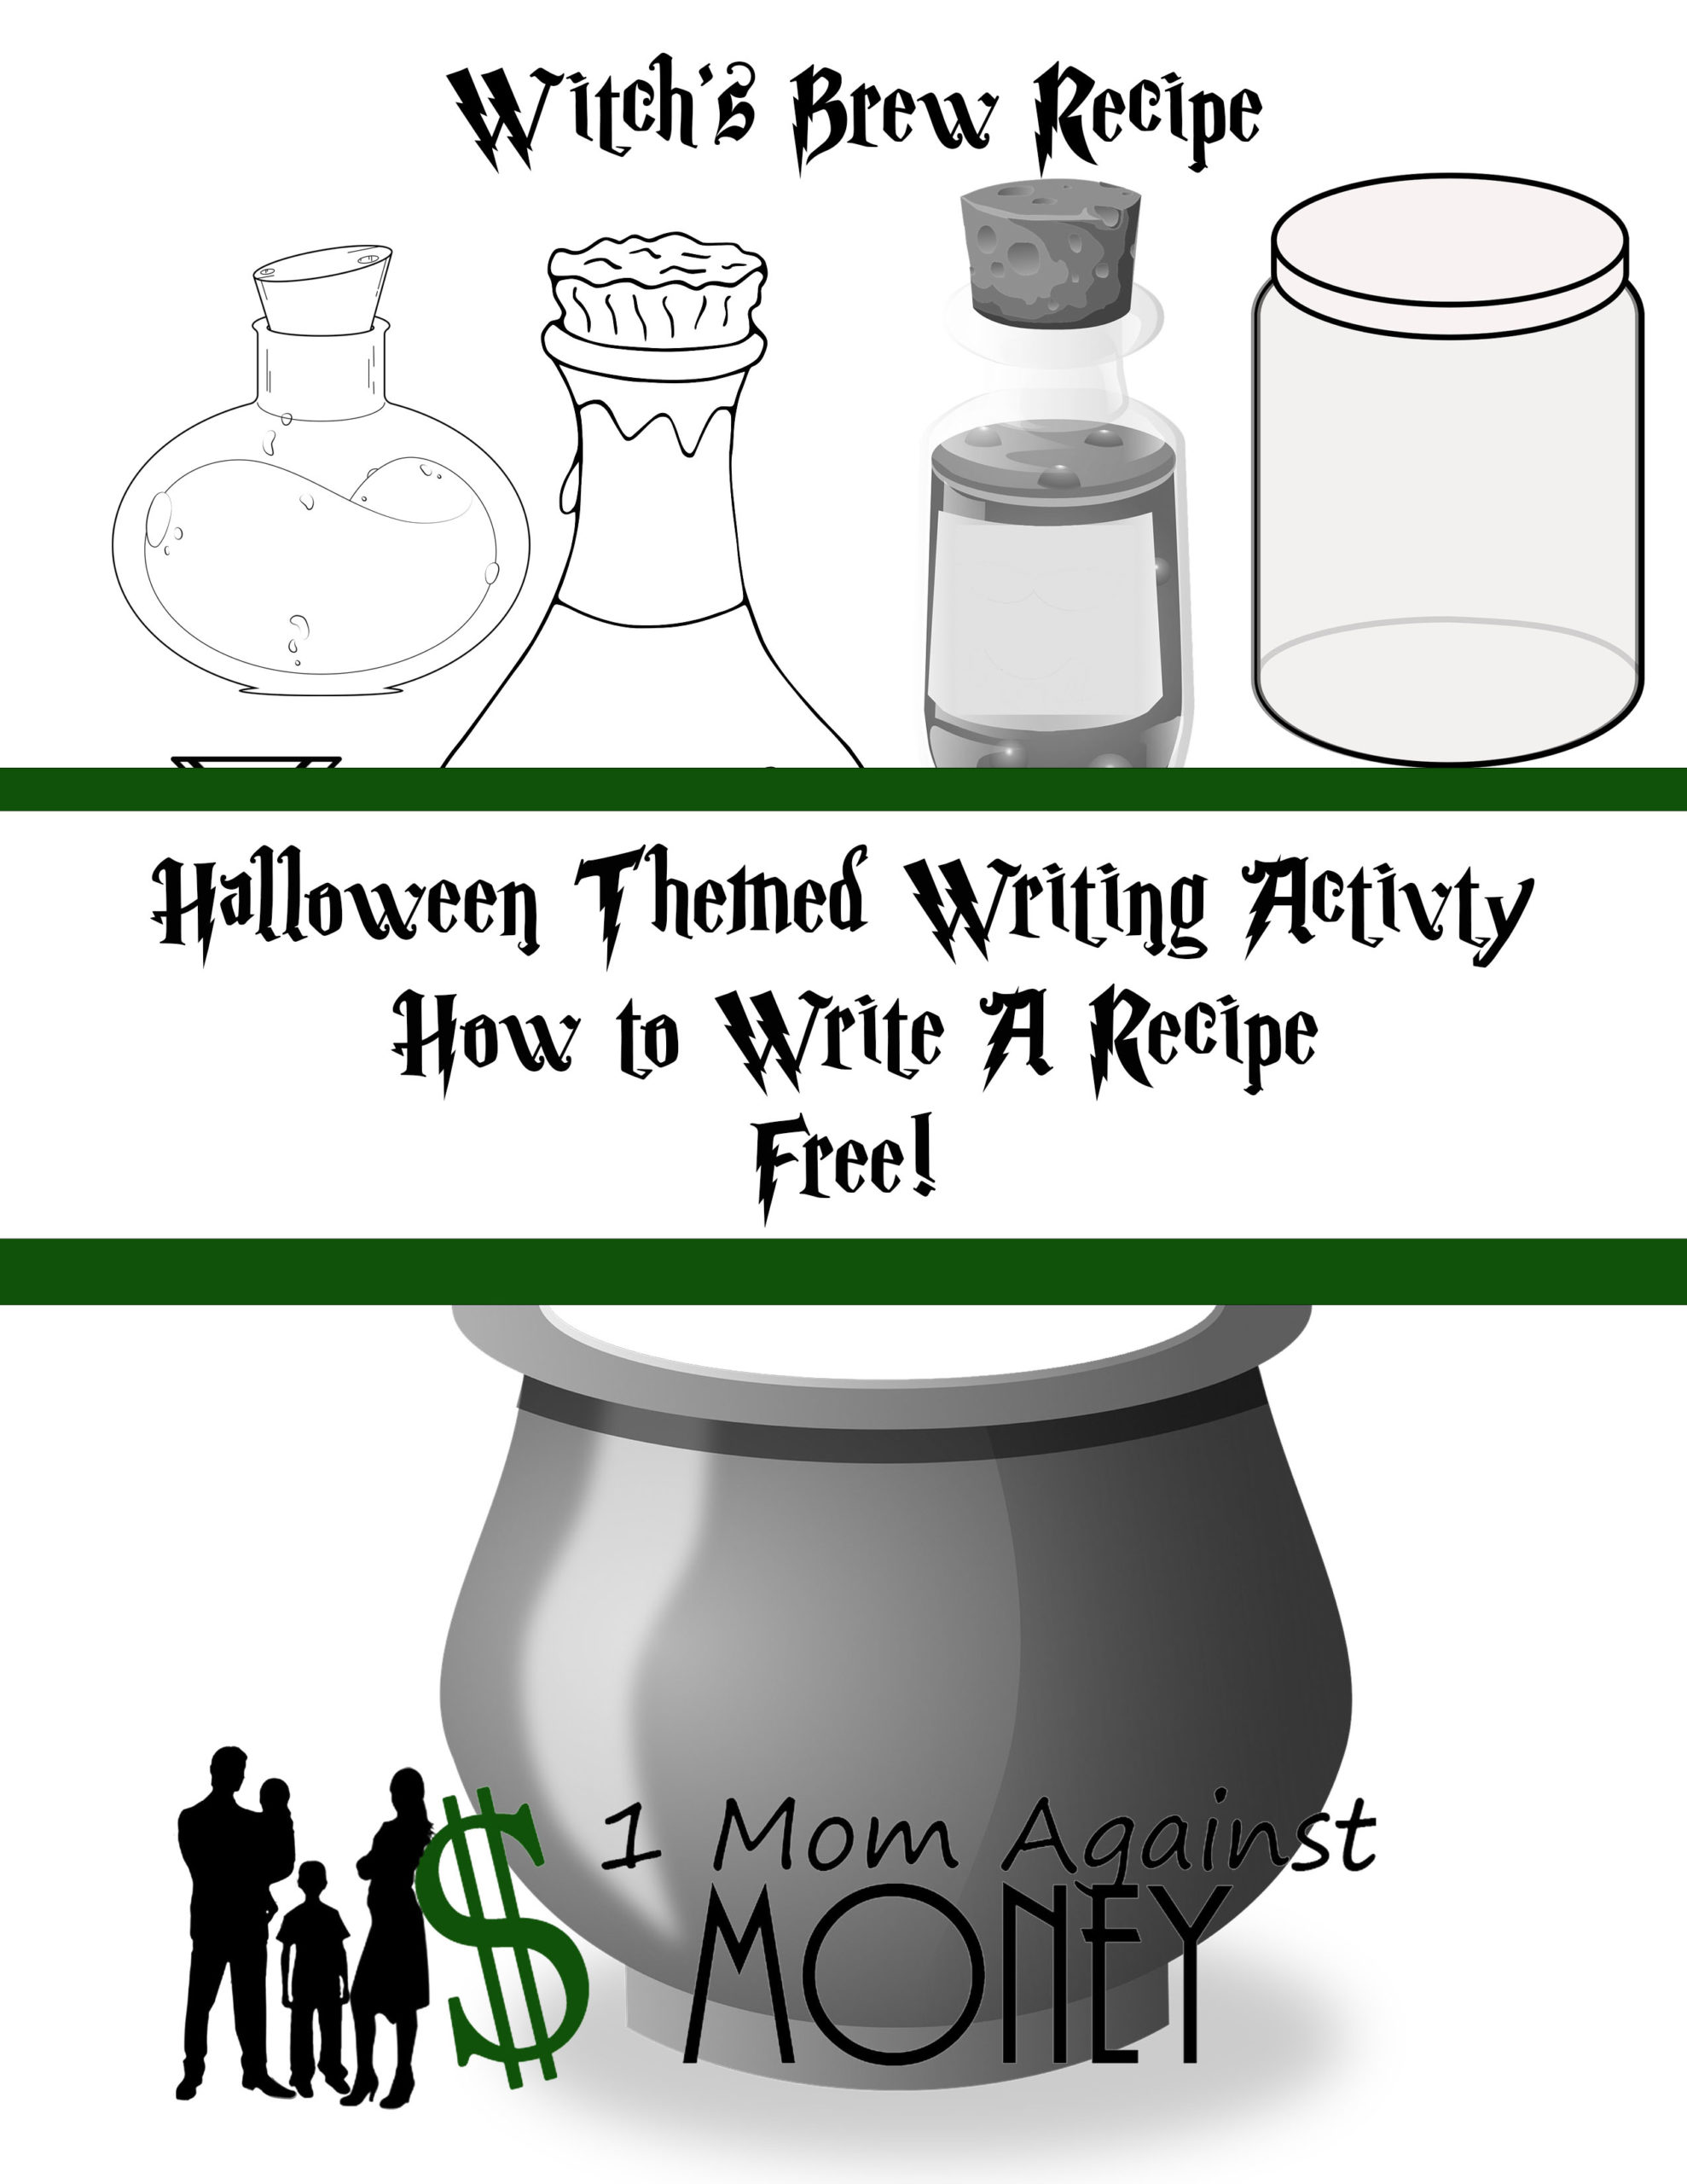 Witches Brew Recipe Writing Activity